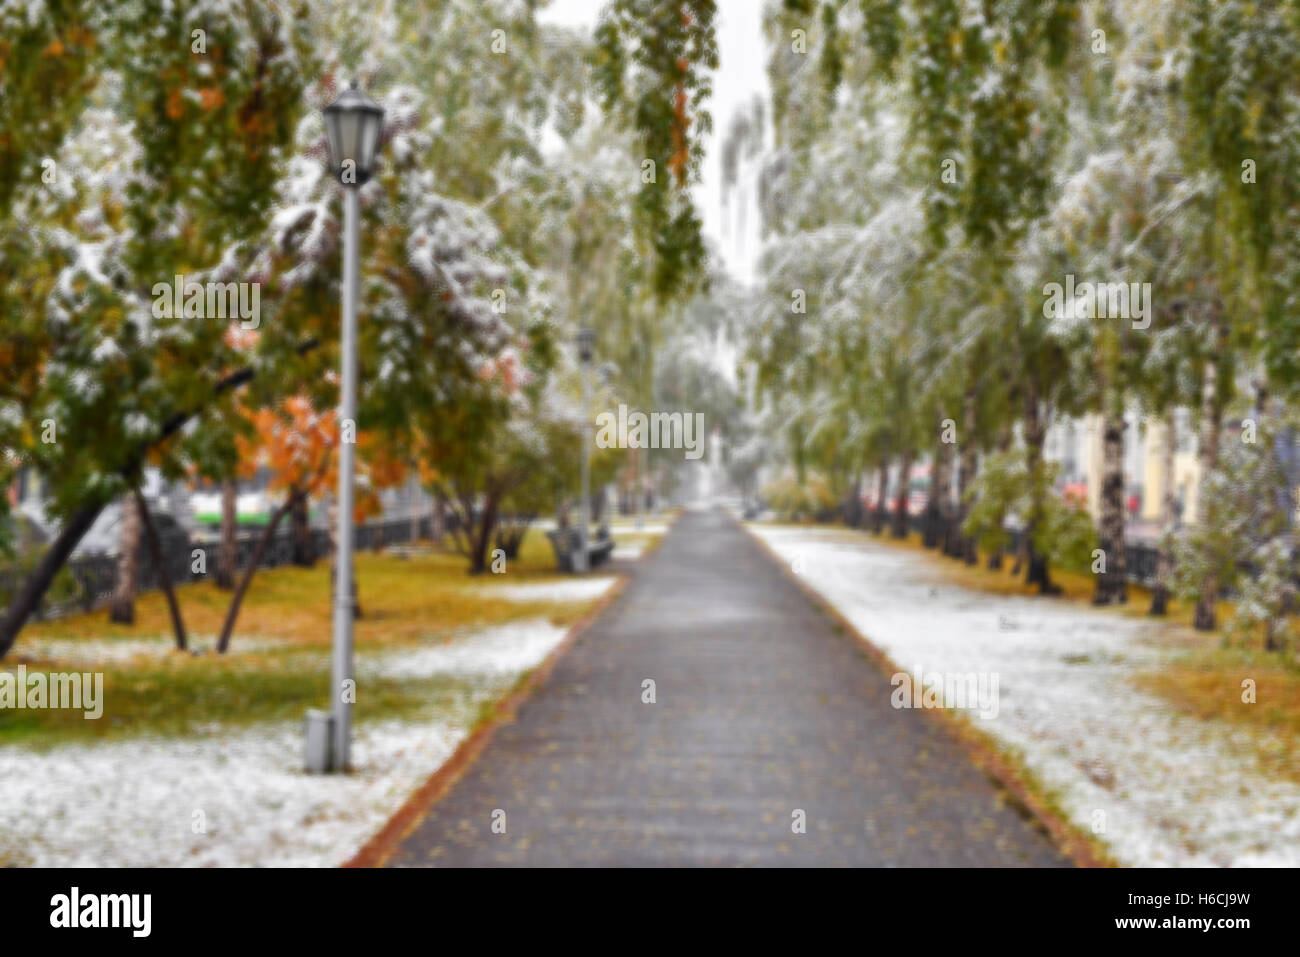 City alley with the first snow - blurred abstract image - Stock Image